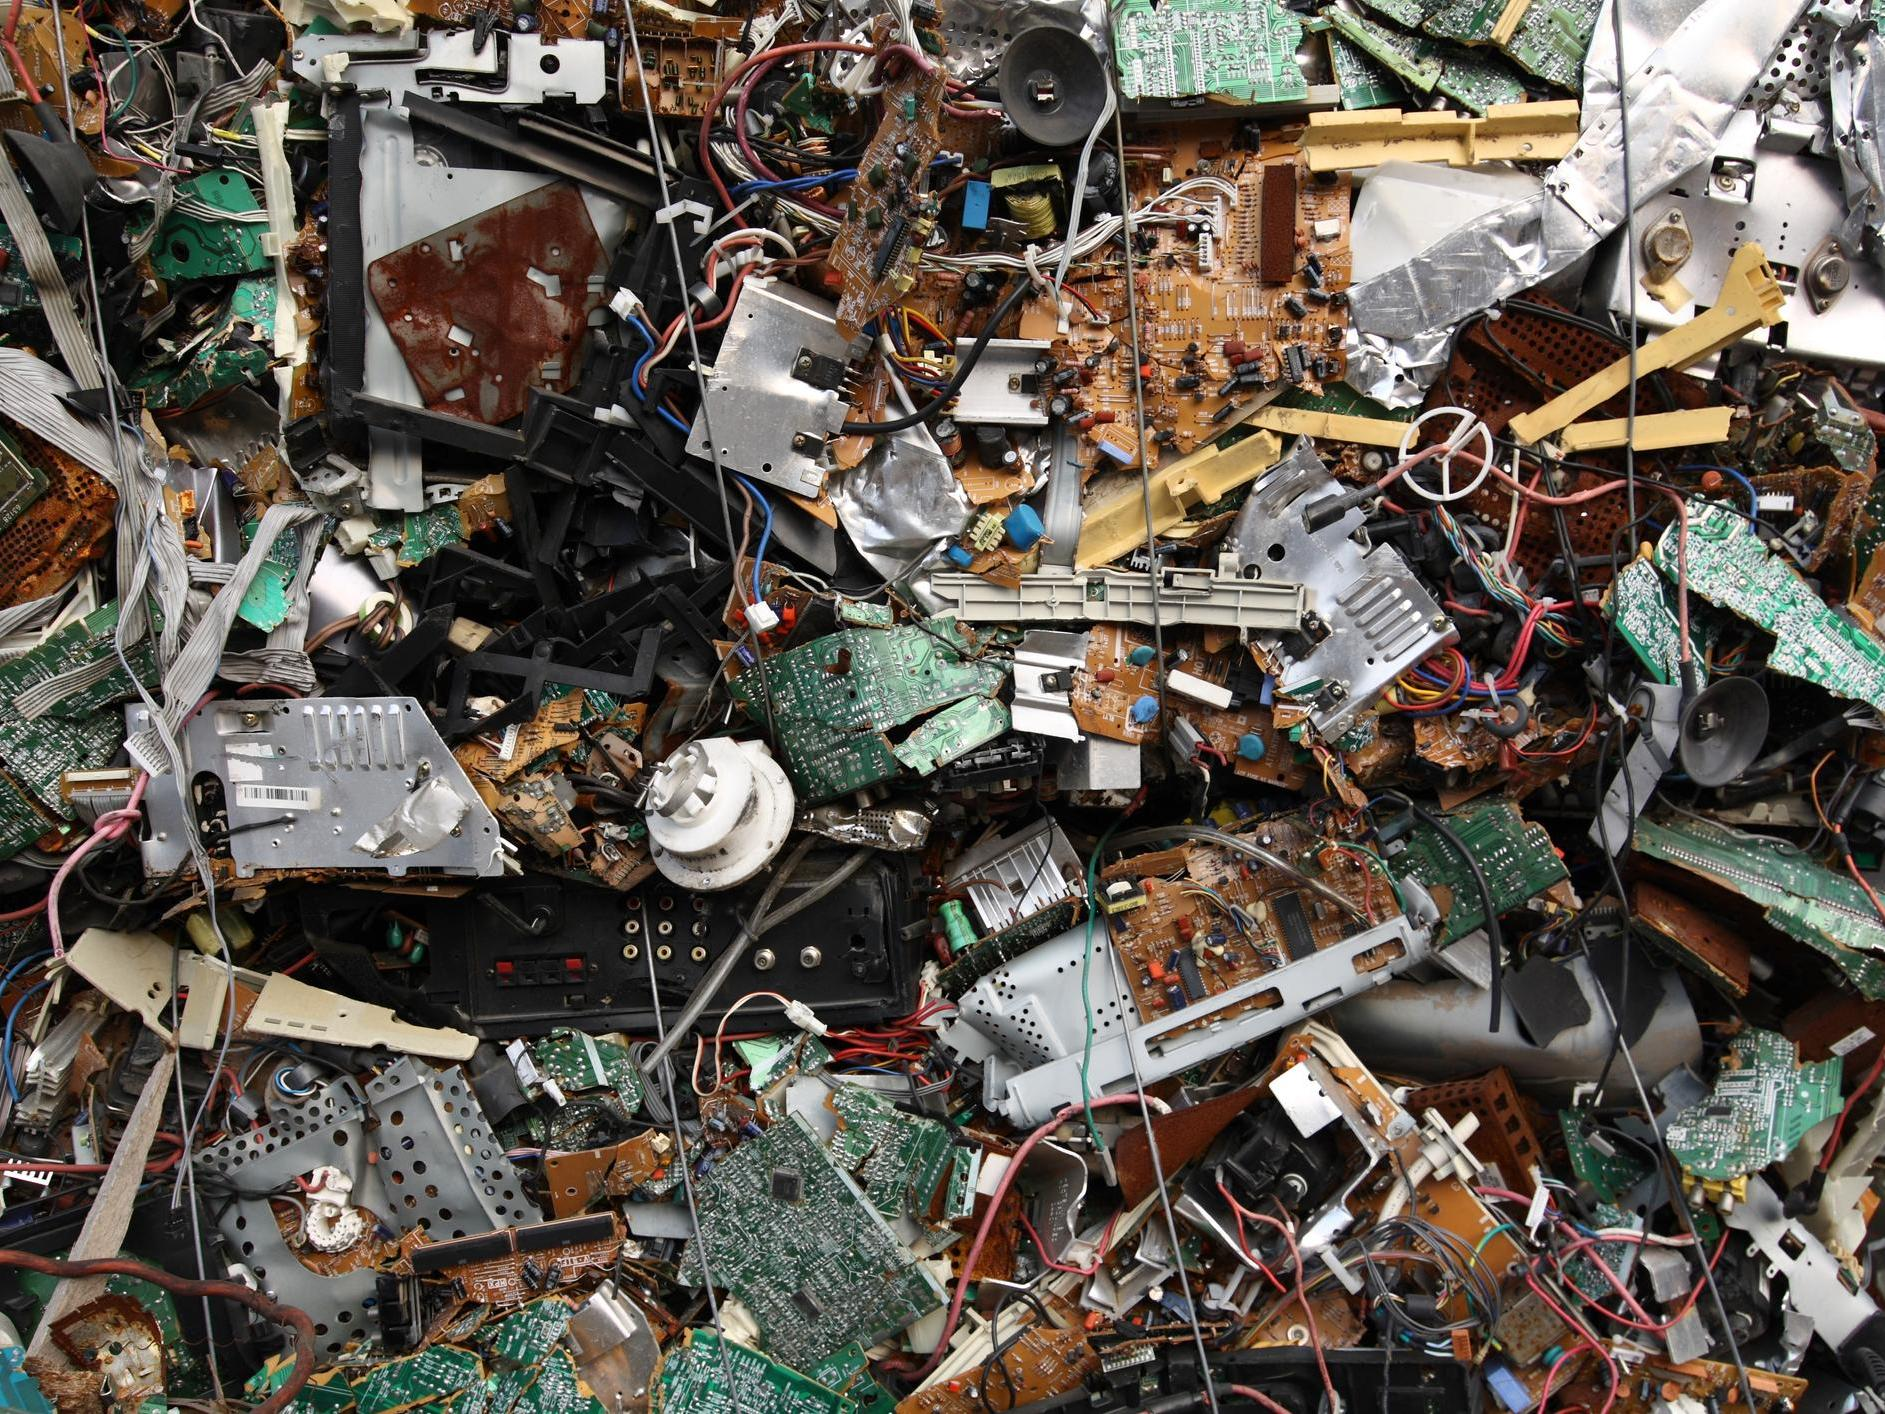 Recycled laptops triggering toxic fumes in Thailand